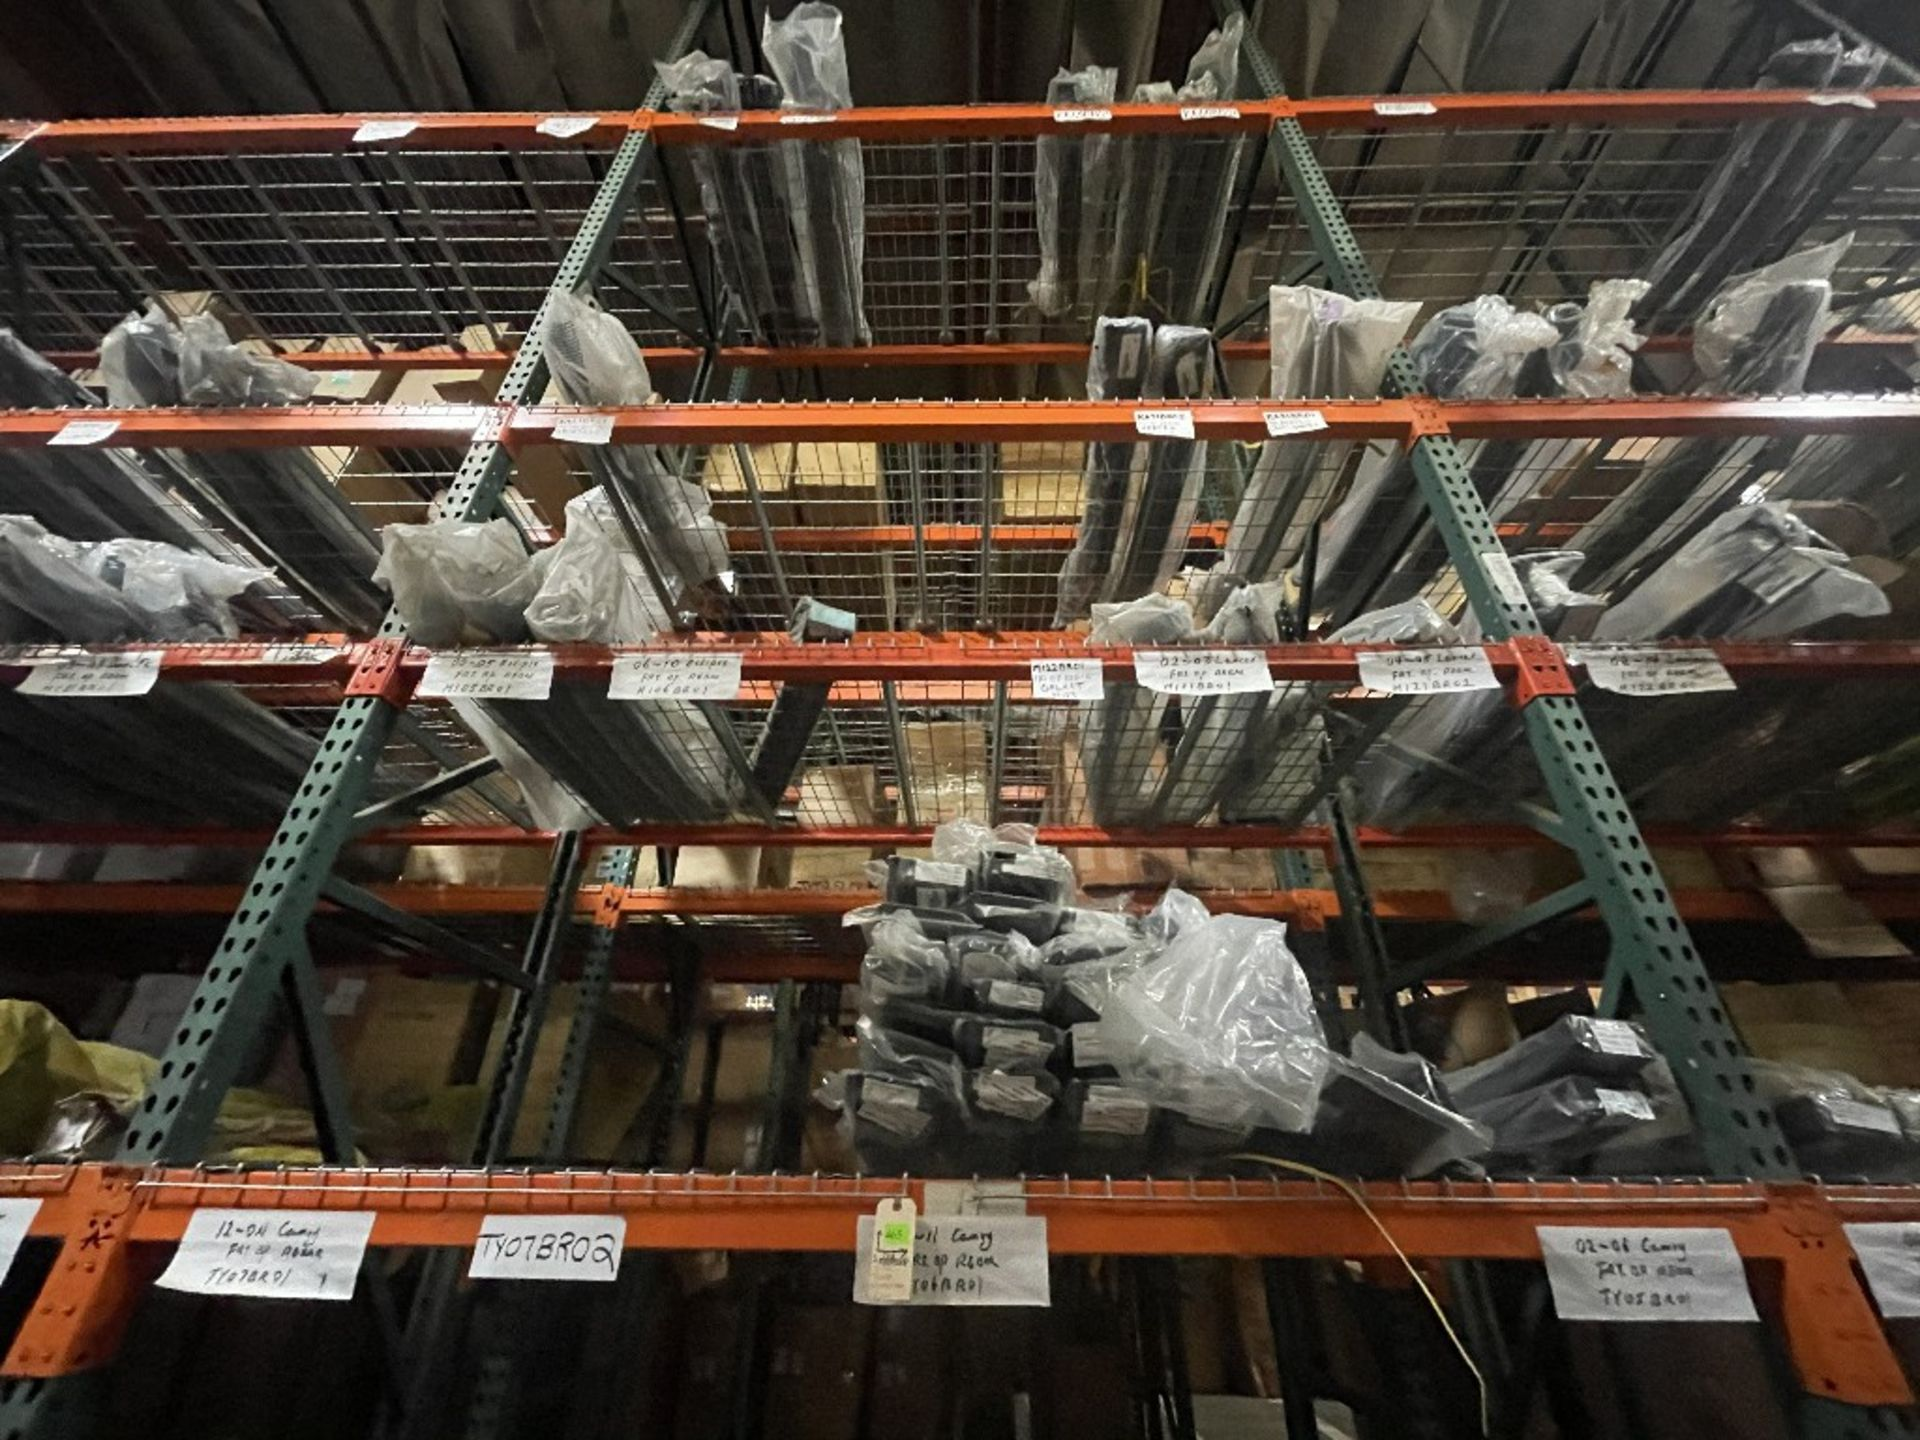 (TOP 3 SECTIONS) ASST REBARS CAMRY, ECLIPSE & +